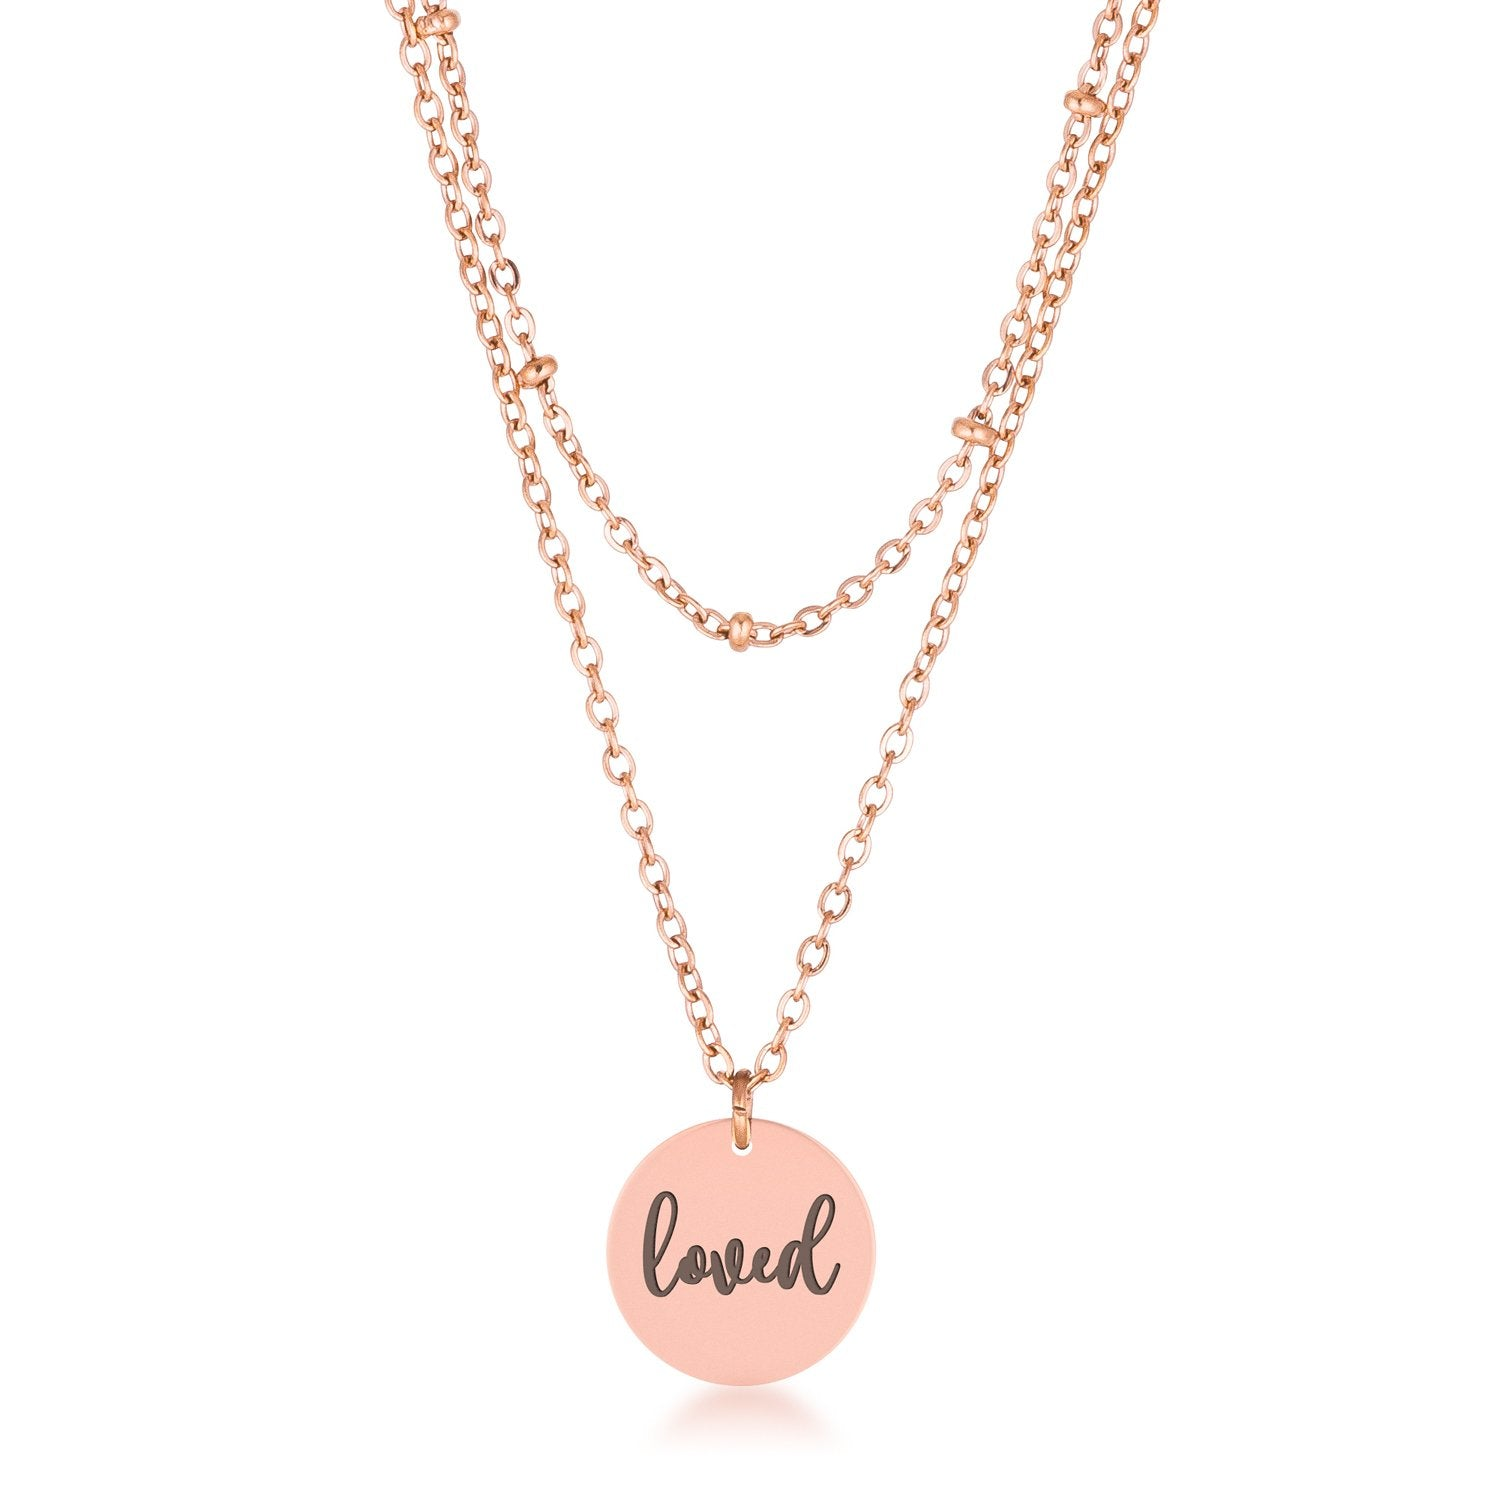 Double Chain loved Necklace-Delicate Rose Gold Plated